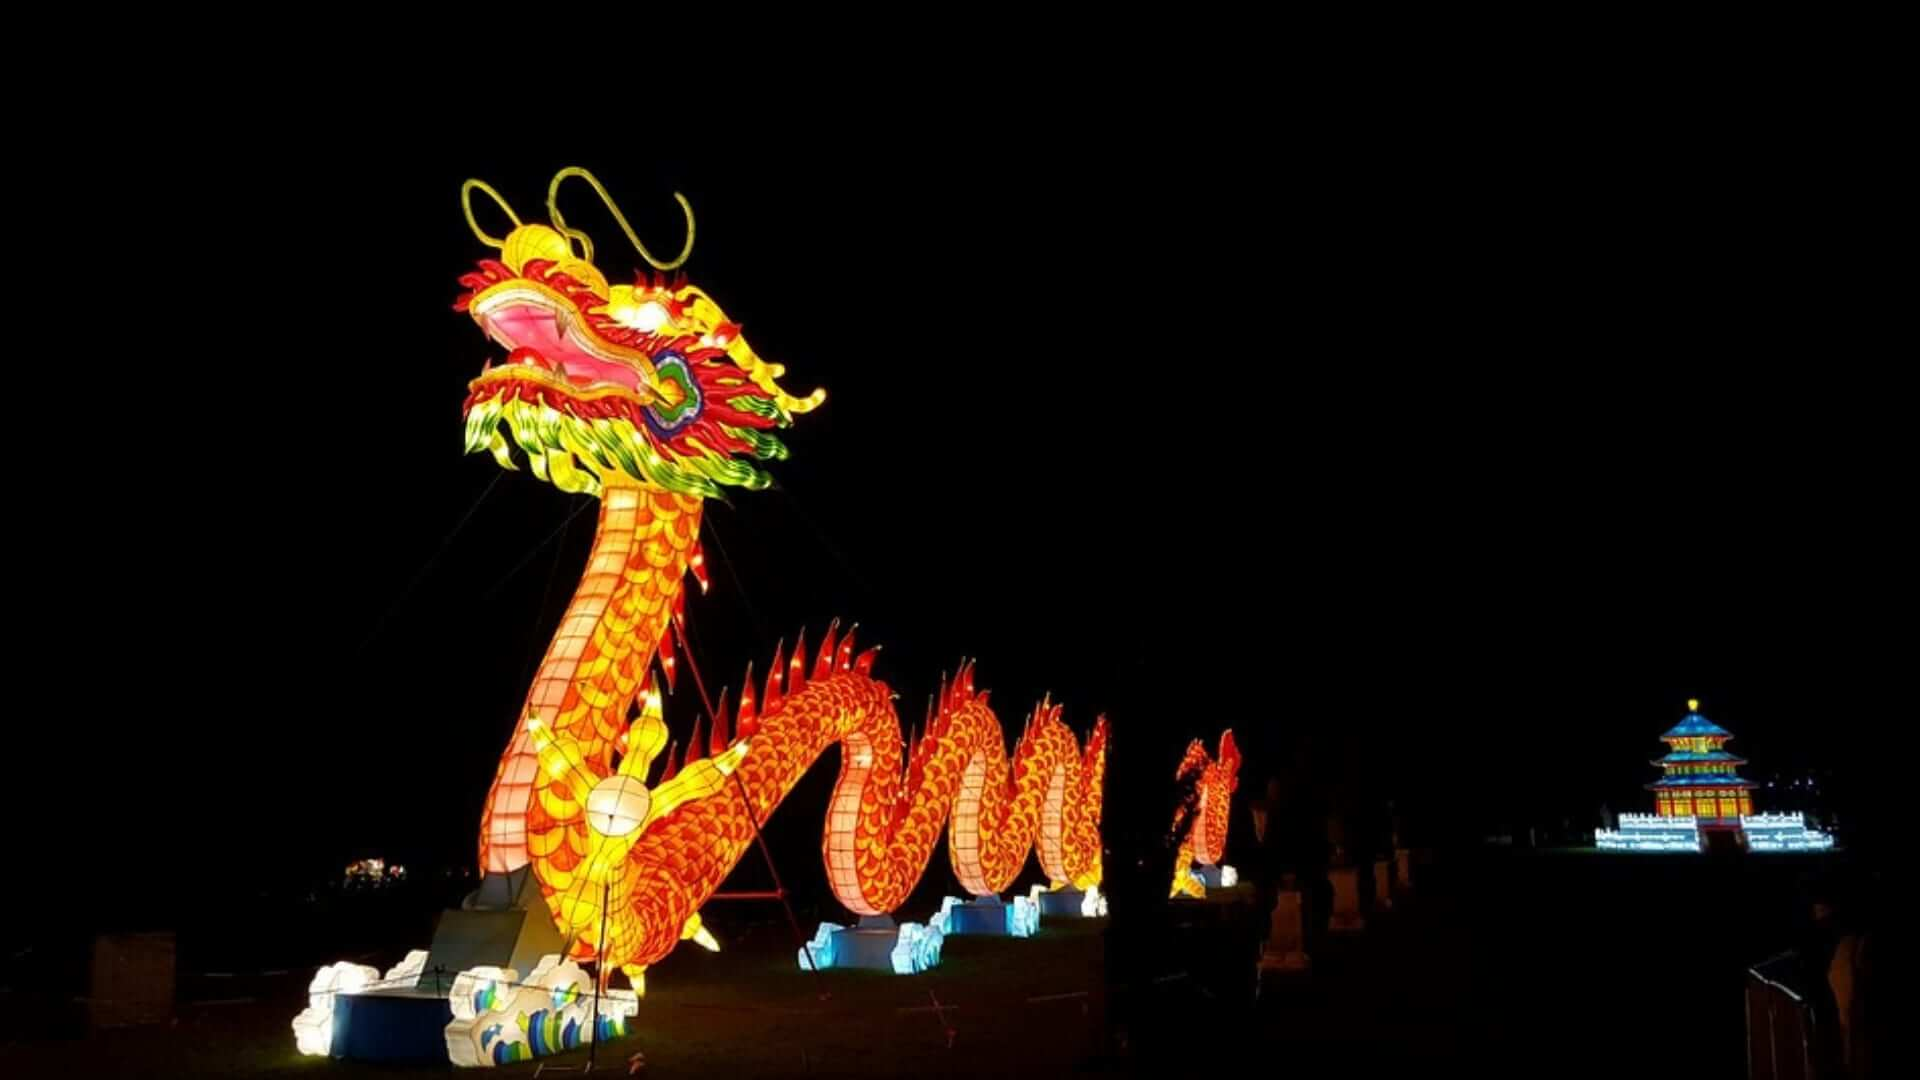 An illuminated Chinese dragon during a lantern festival in China.